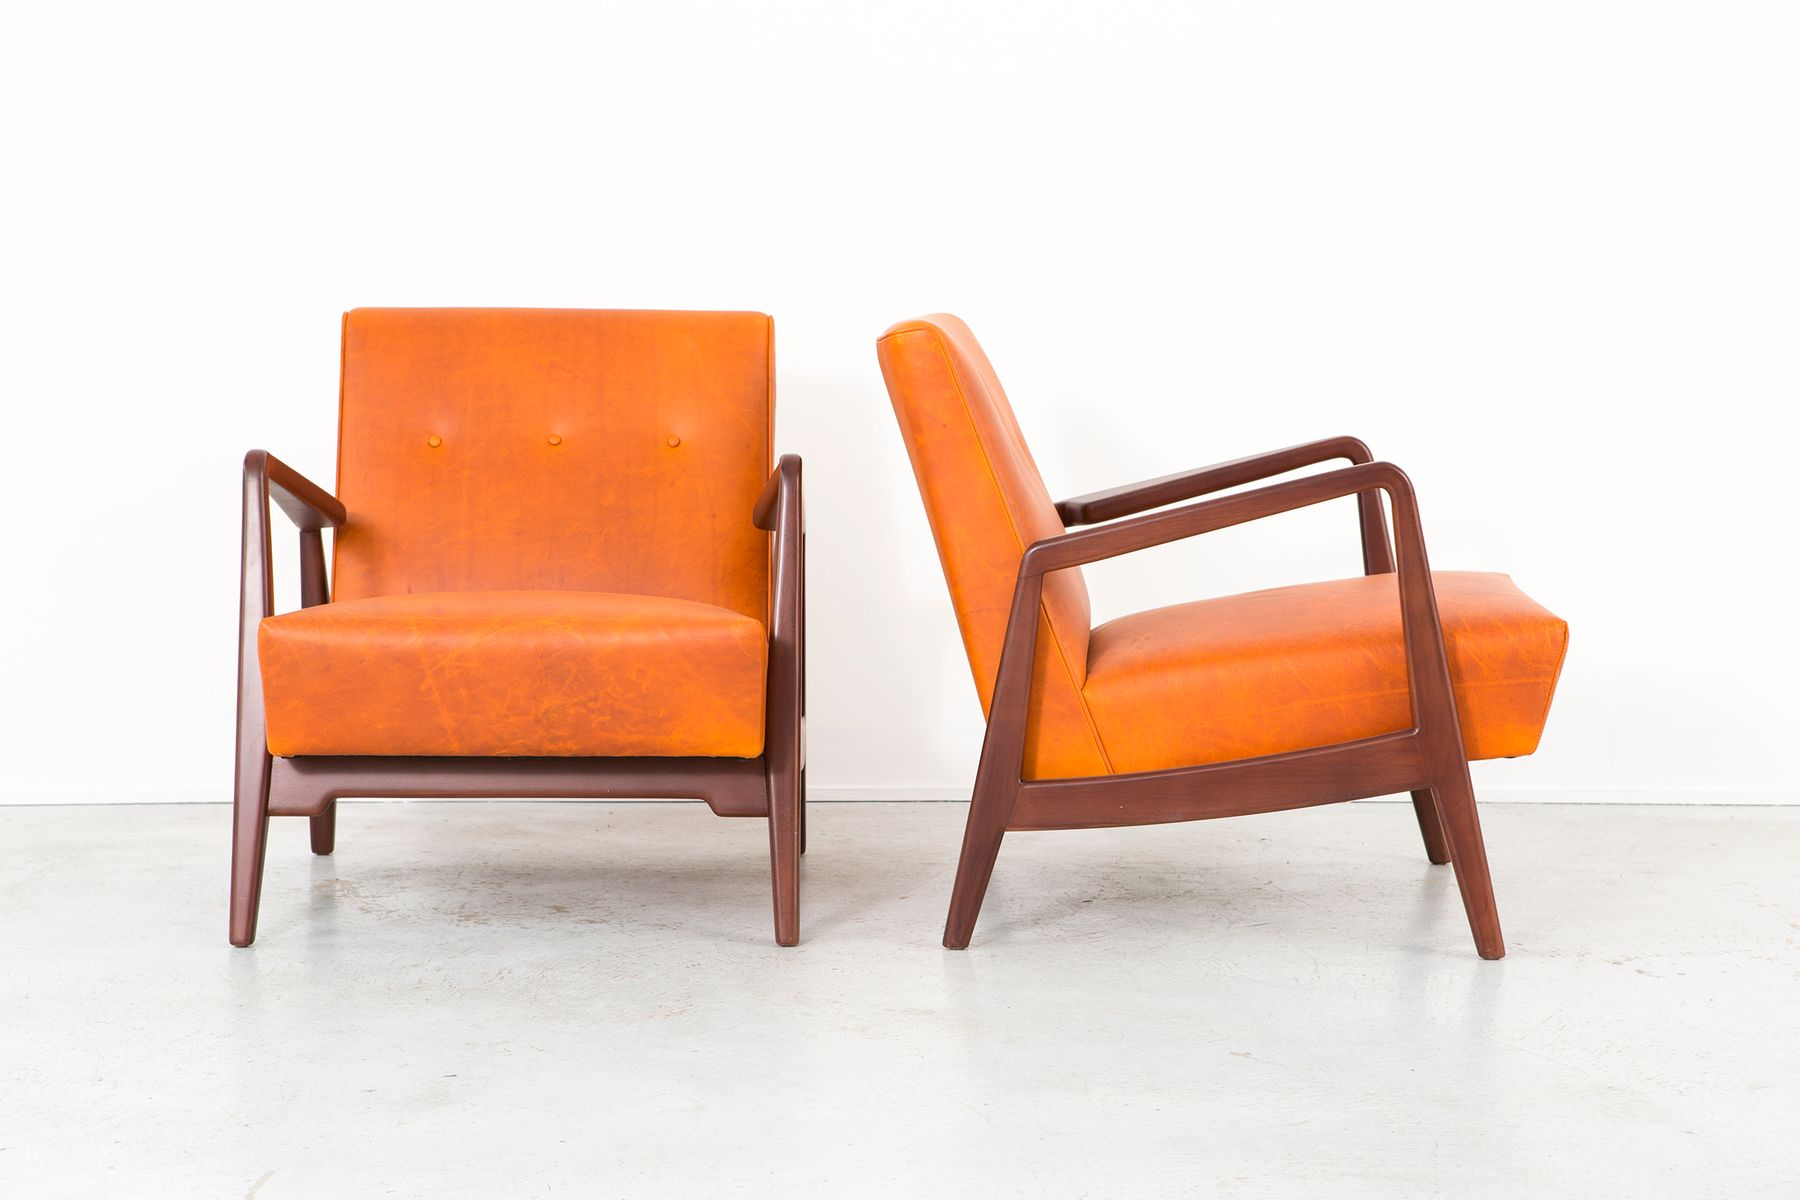 Jens Risom Side Chair Lounge Chairs By Jens Risom 1950s Set Of 2 For Sale At Pamono